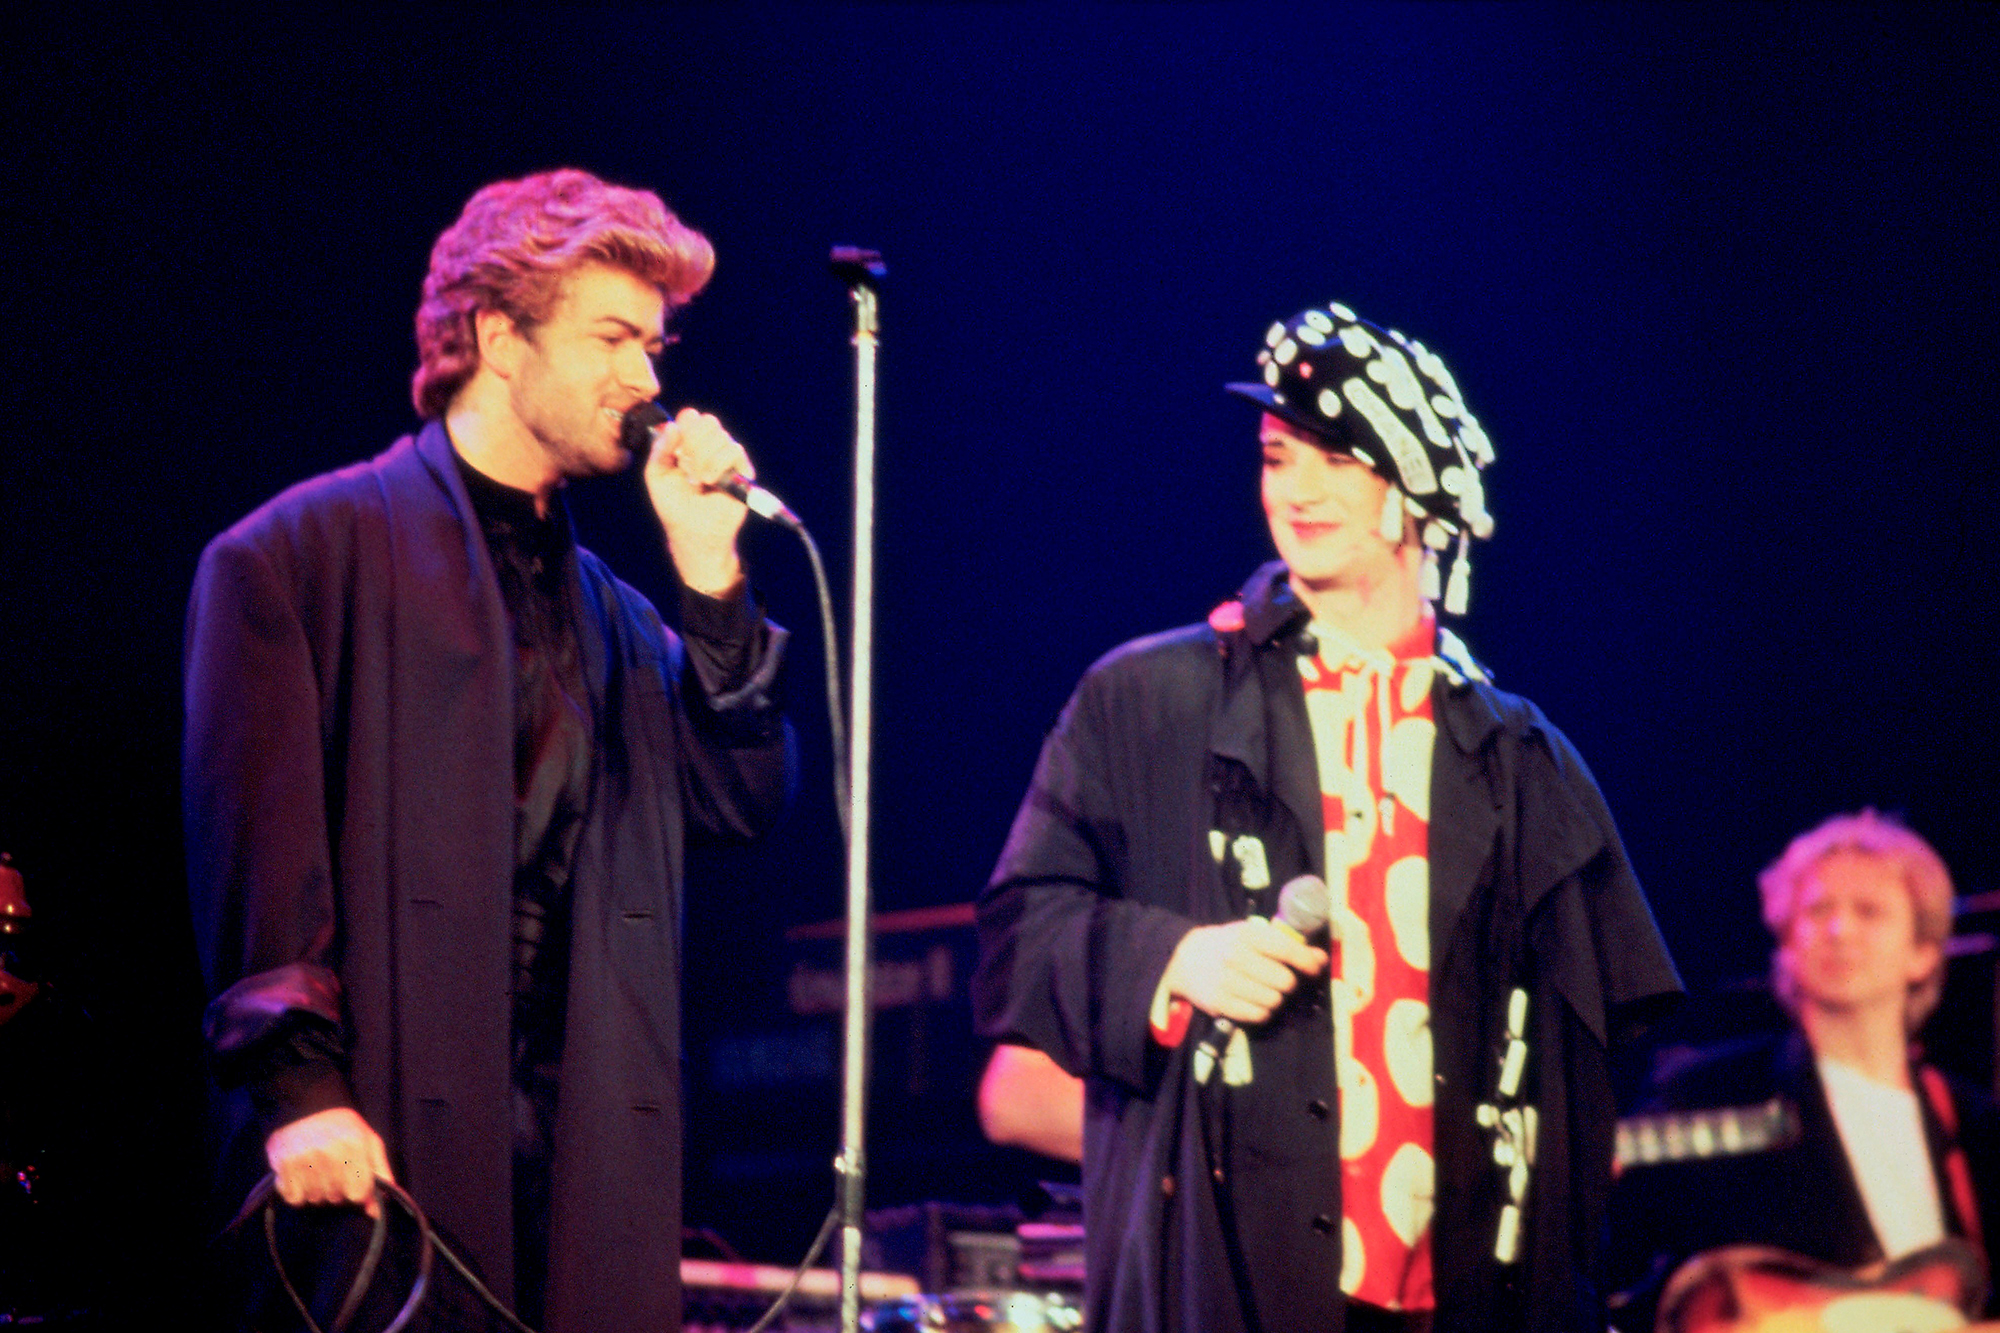 George Michael performs with Boy George and The Police's Andy Summers at an AIDS awareness concert in London, April 1987.